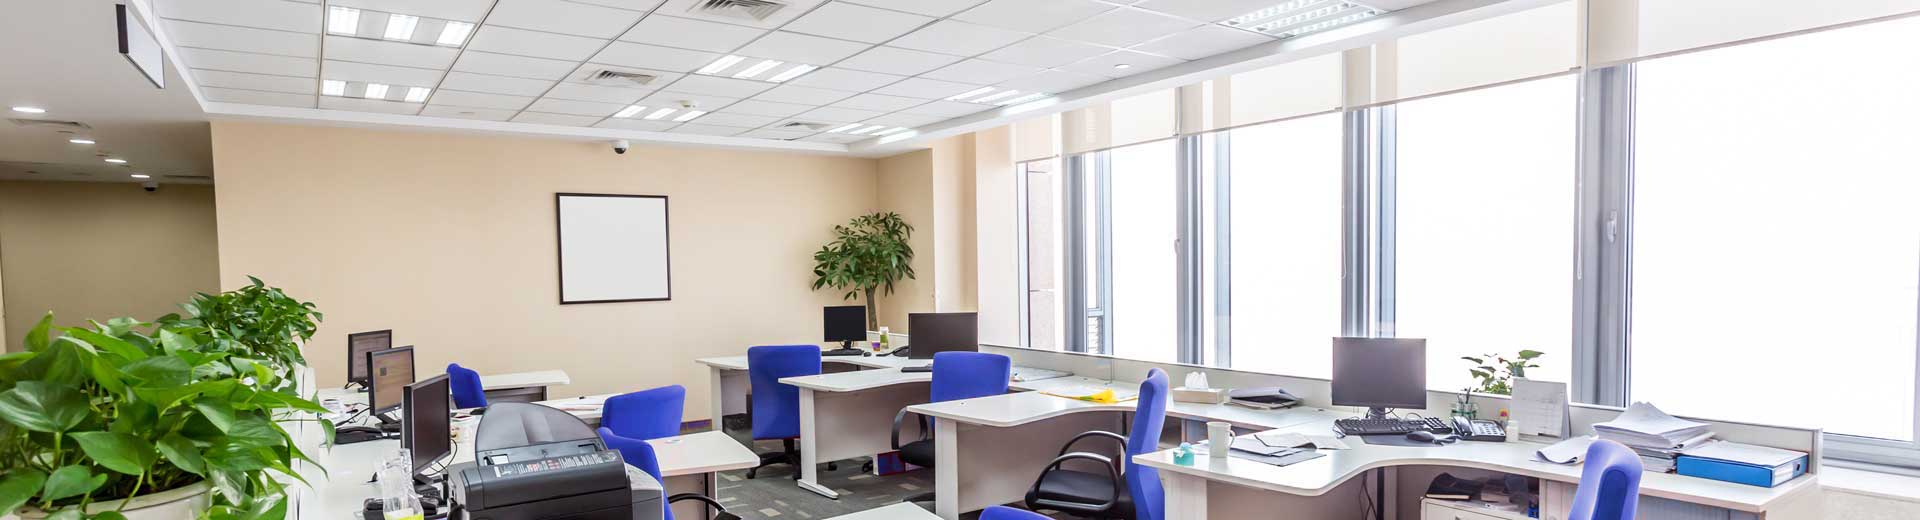 Range of Suspended LED Office lights